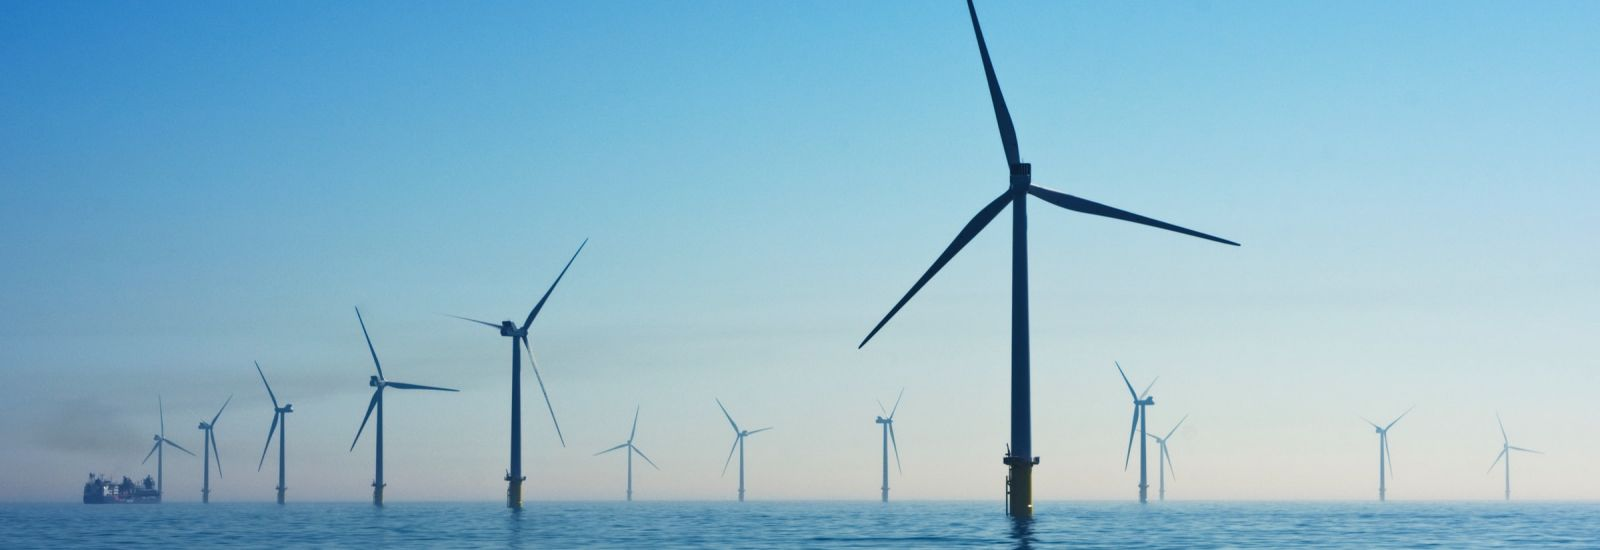 Off-shore wind farm with blue sky